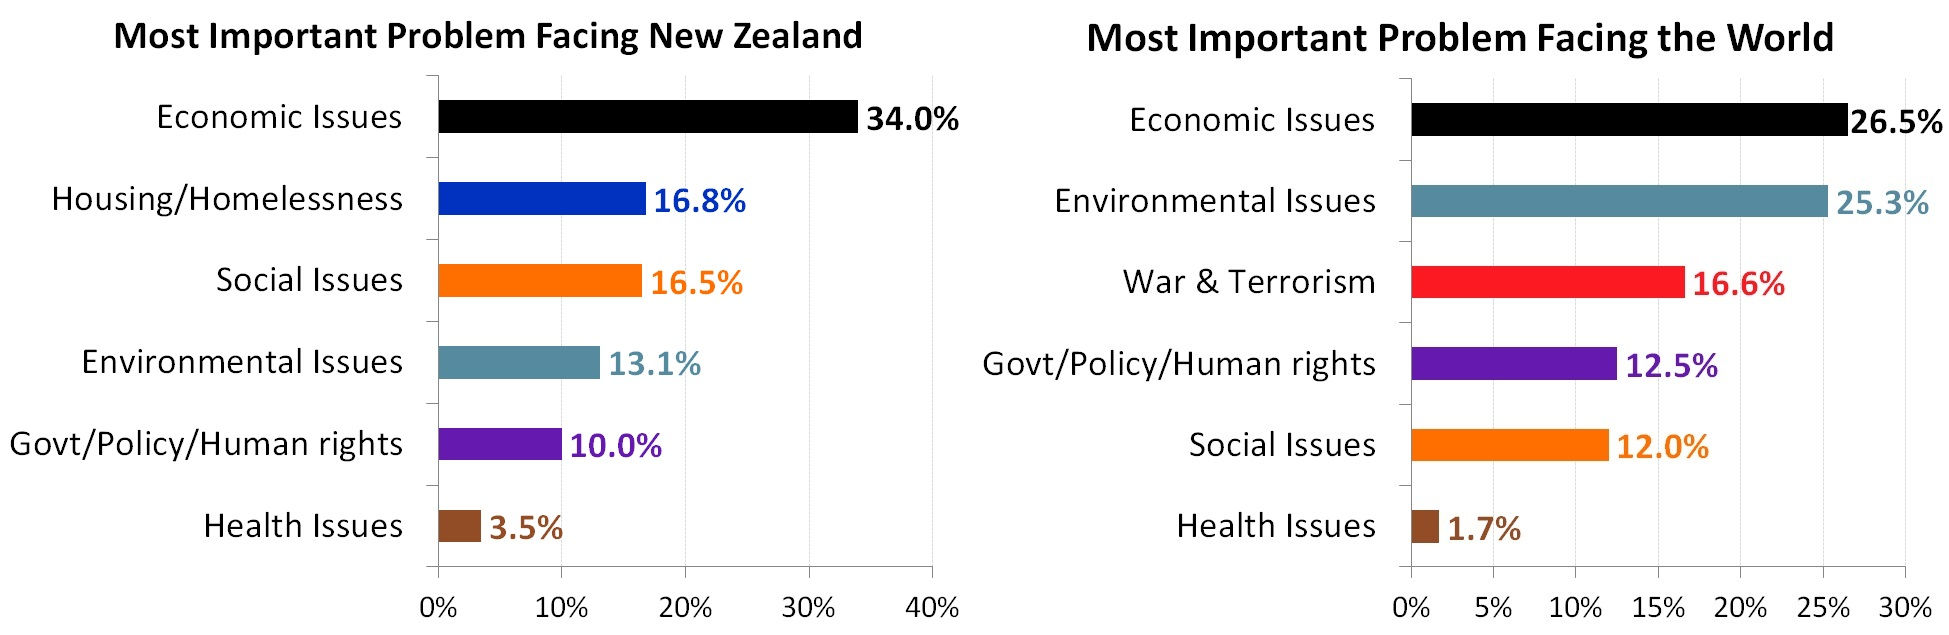 Most Important Problems Facing New Zealand and the World - February 2018